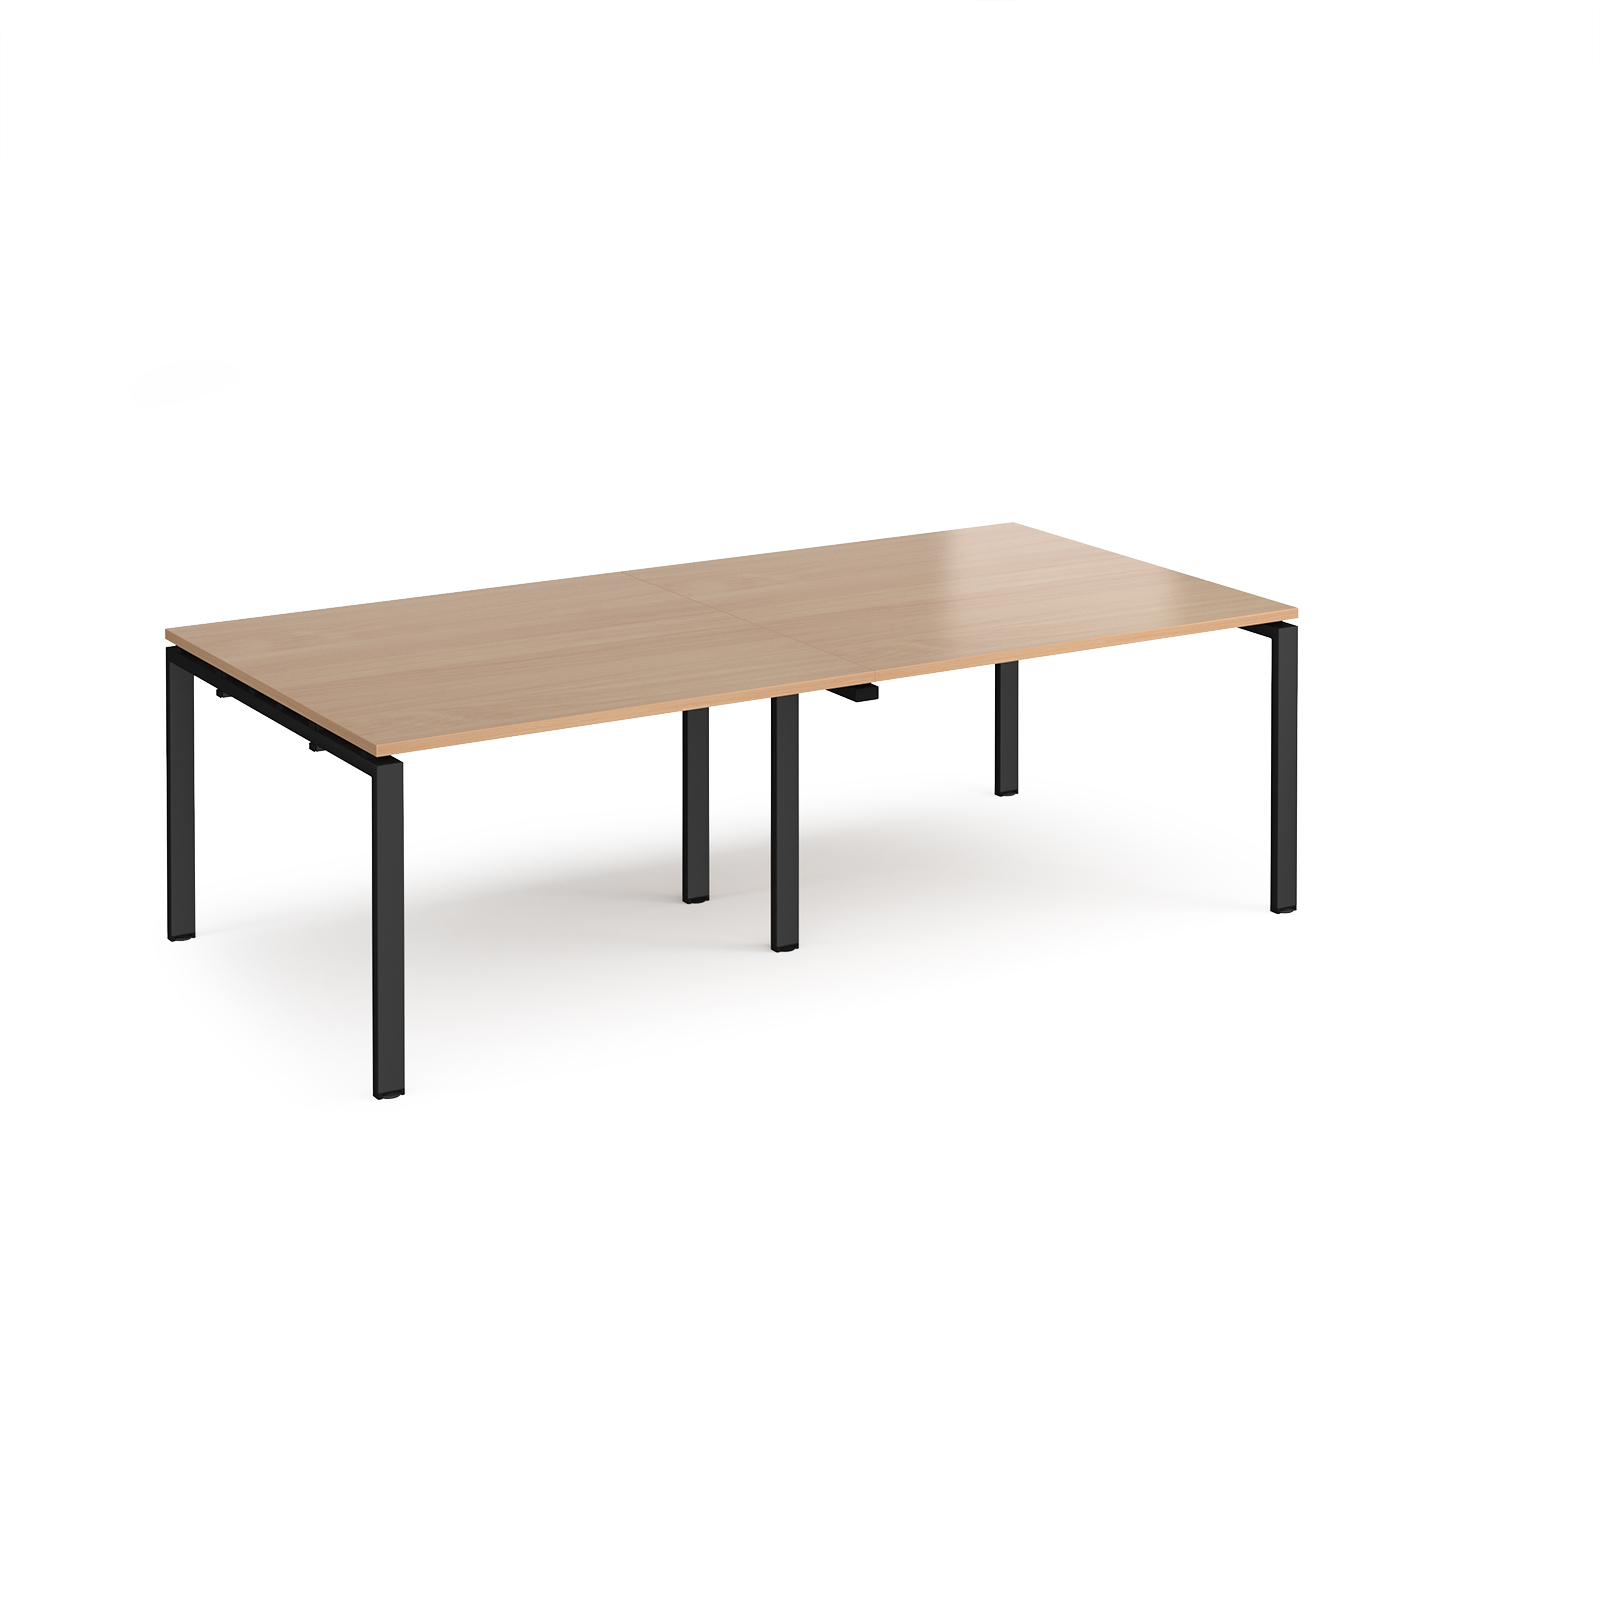 Boardroom / Meeting Adapt rectangular boardroom table